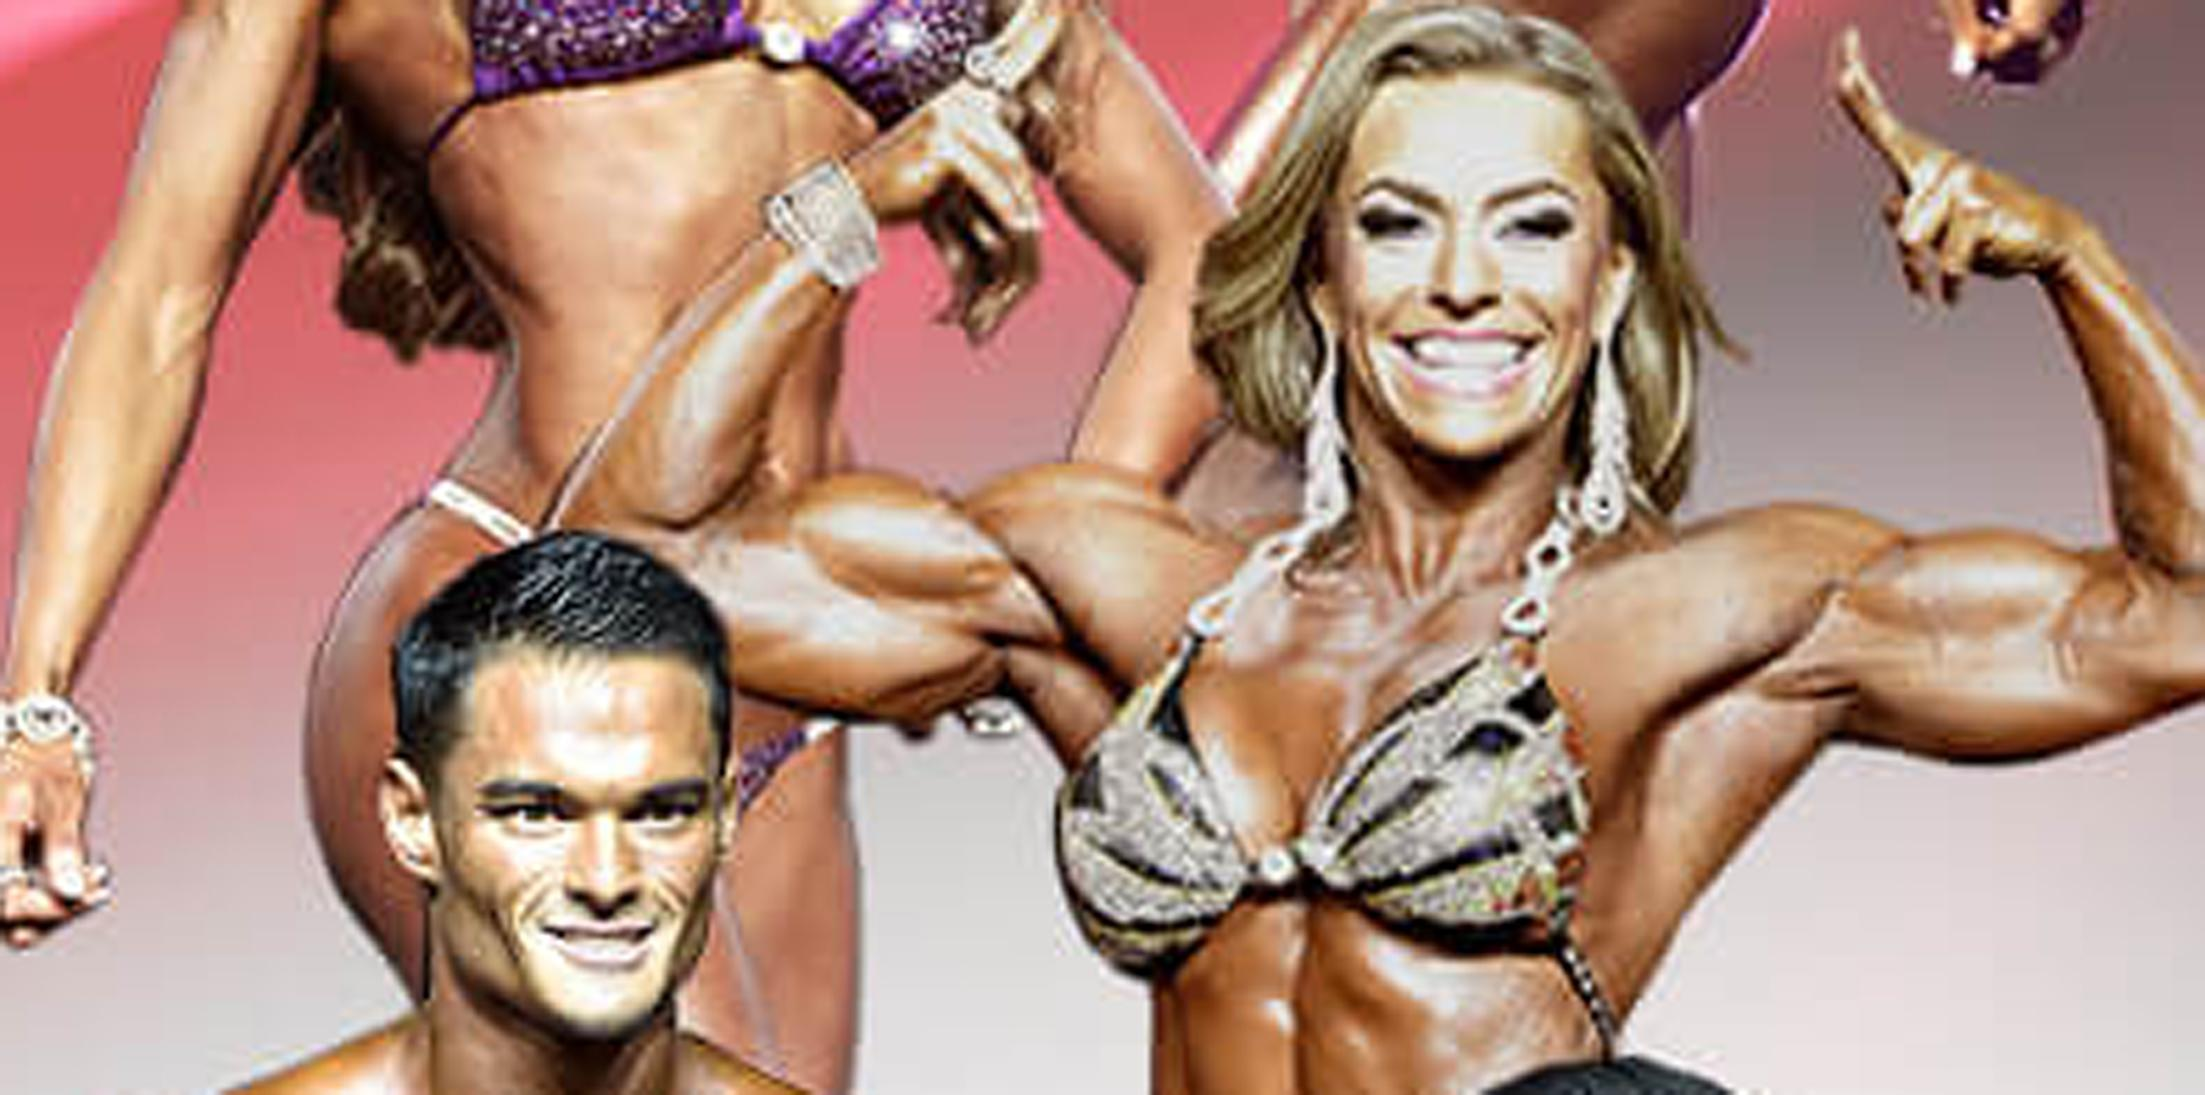 World hottest greatest bodies competition mr olympia hero